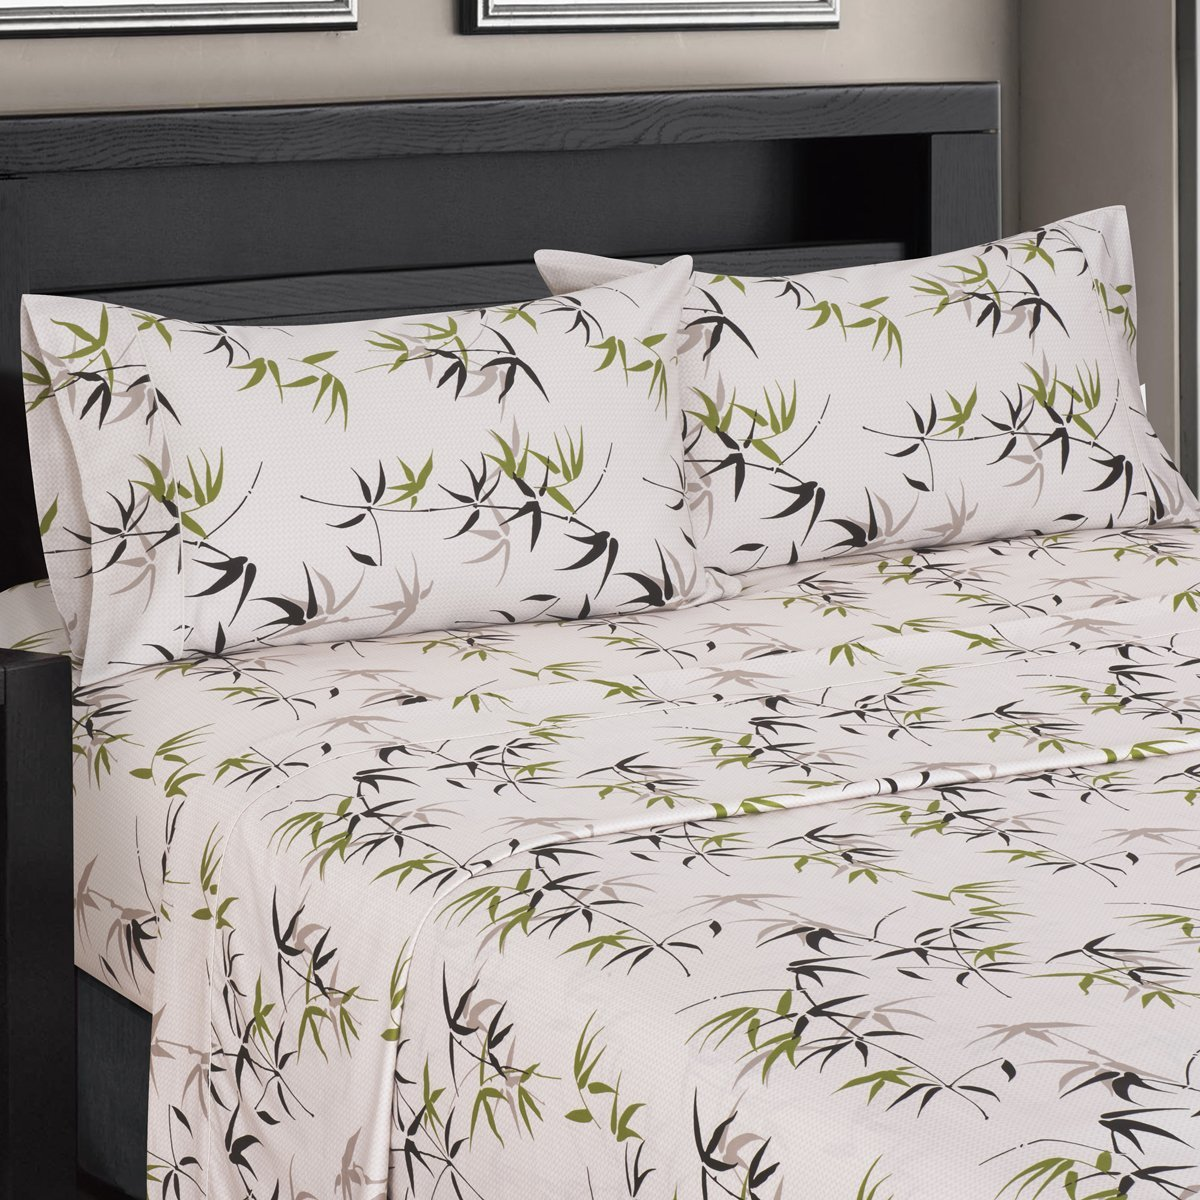 Fern Floral Sateen Cotton Sheets, 4pc California-King Bed Sheet Set 100-Percent Cotton, Superior Sateen Weave, Silky Soft, Deep Pocket, Modern Reactive Print, 300 Thread Count